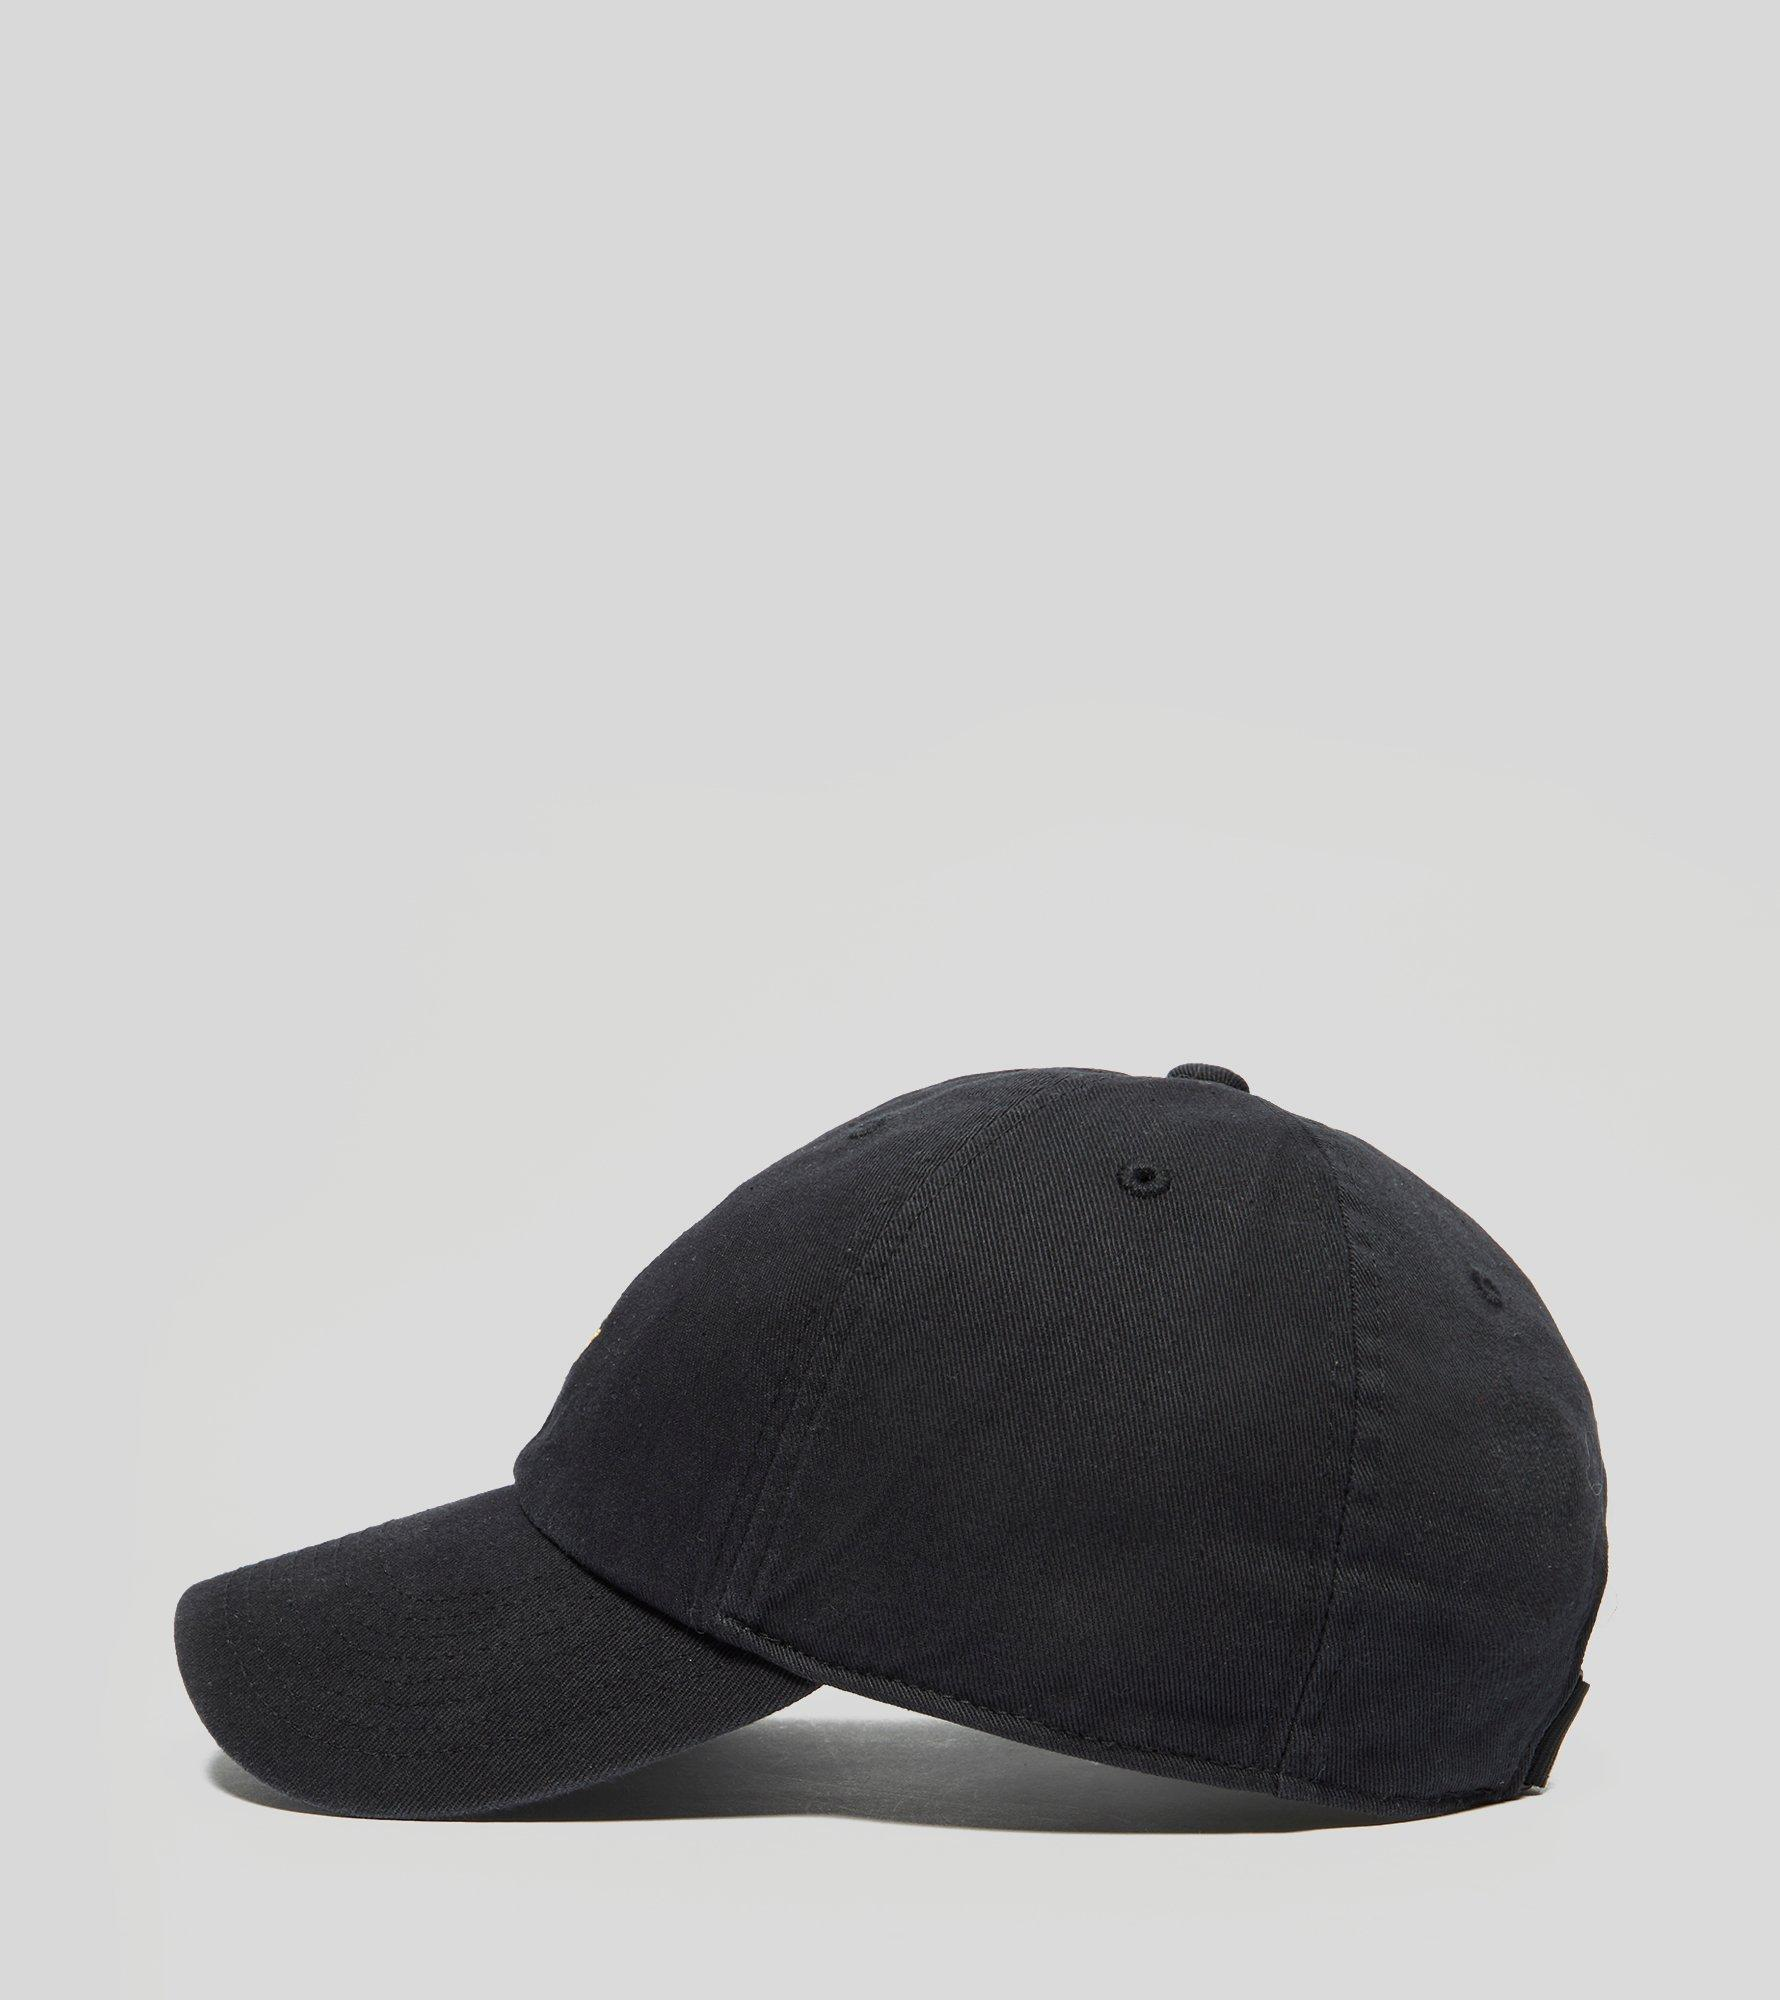 7caaf6dfc5d Lyst - Nike Air Heritage 86 Cap in Black for Men